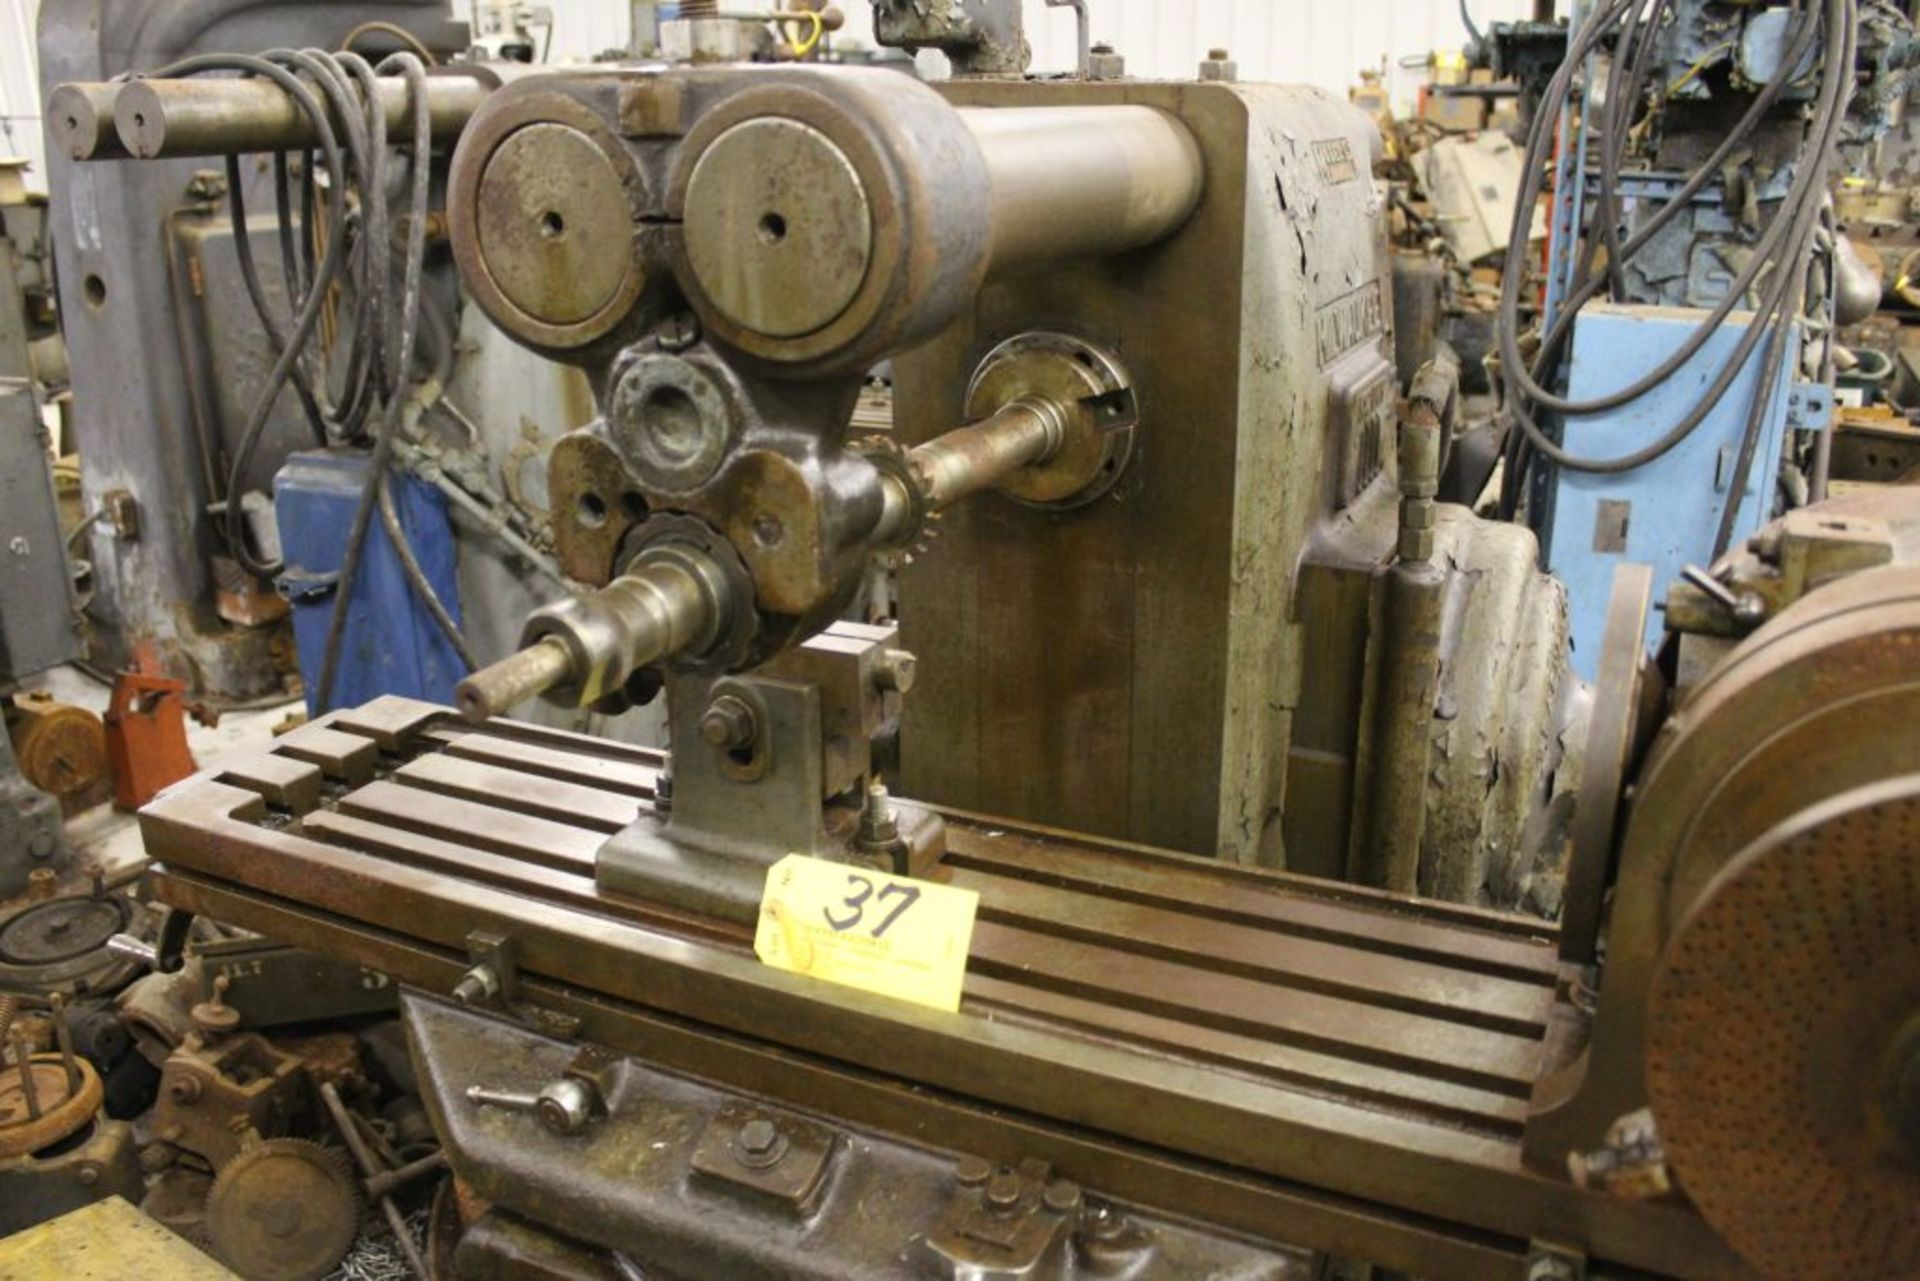 """Milwaukee mill model H, sn 3596, 51"""" x 10"""" bed, horz. Boring mill. - Image 2 of 3"""